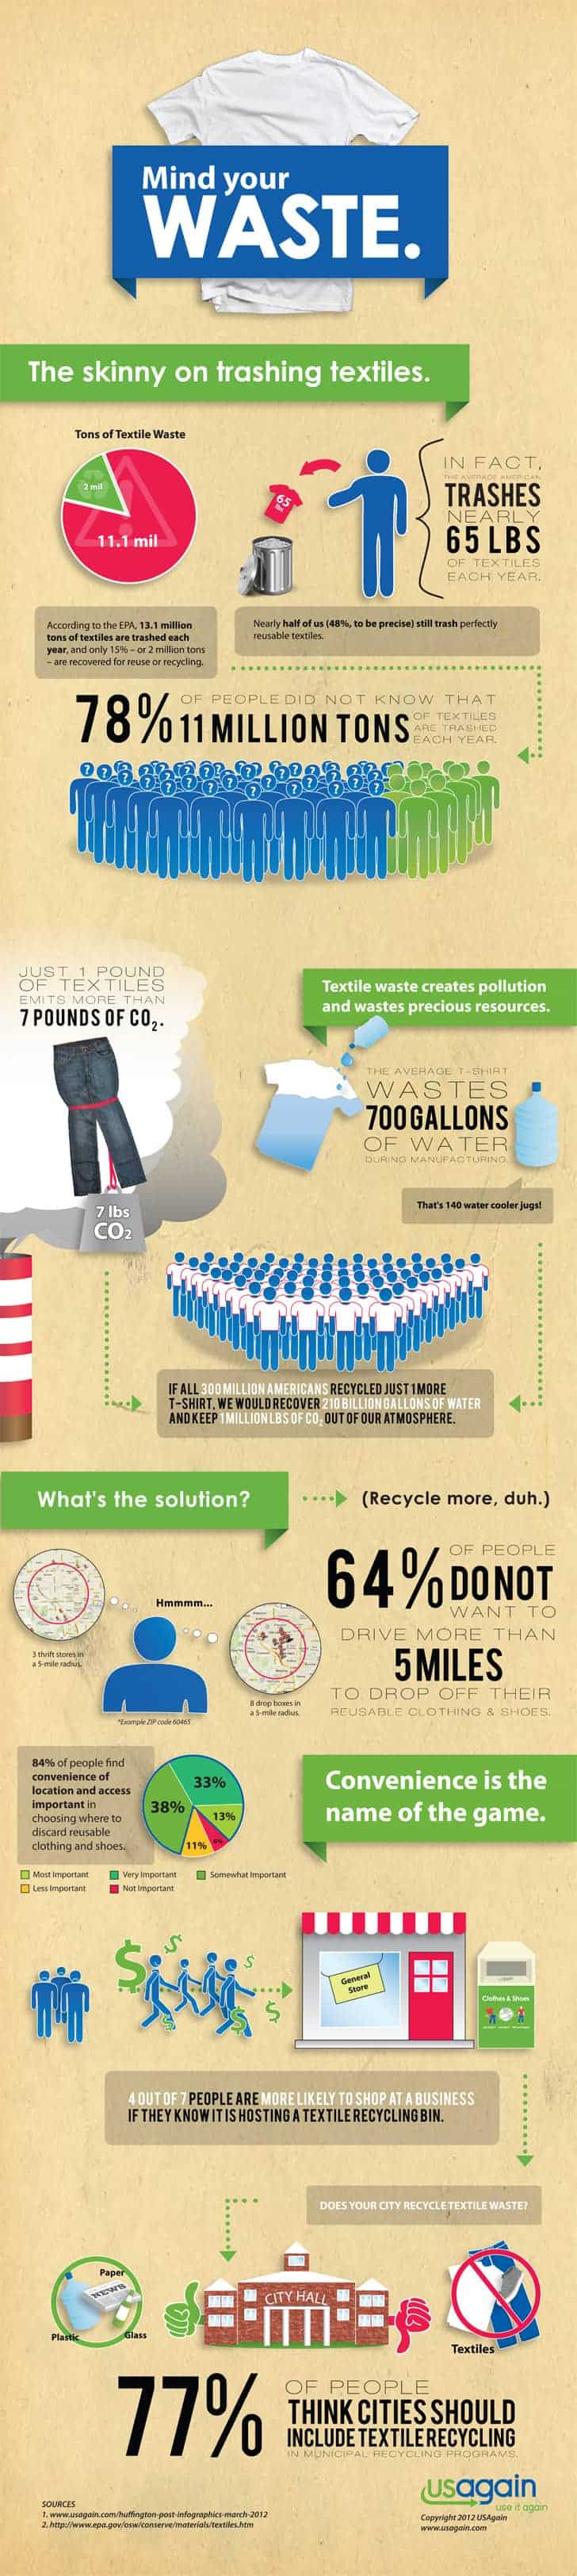 How Many Pounds of Textiles Are Trashed Every Year? [Infographic]